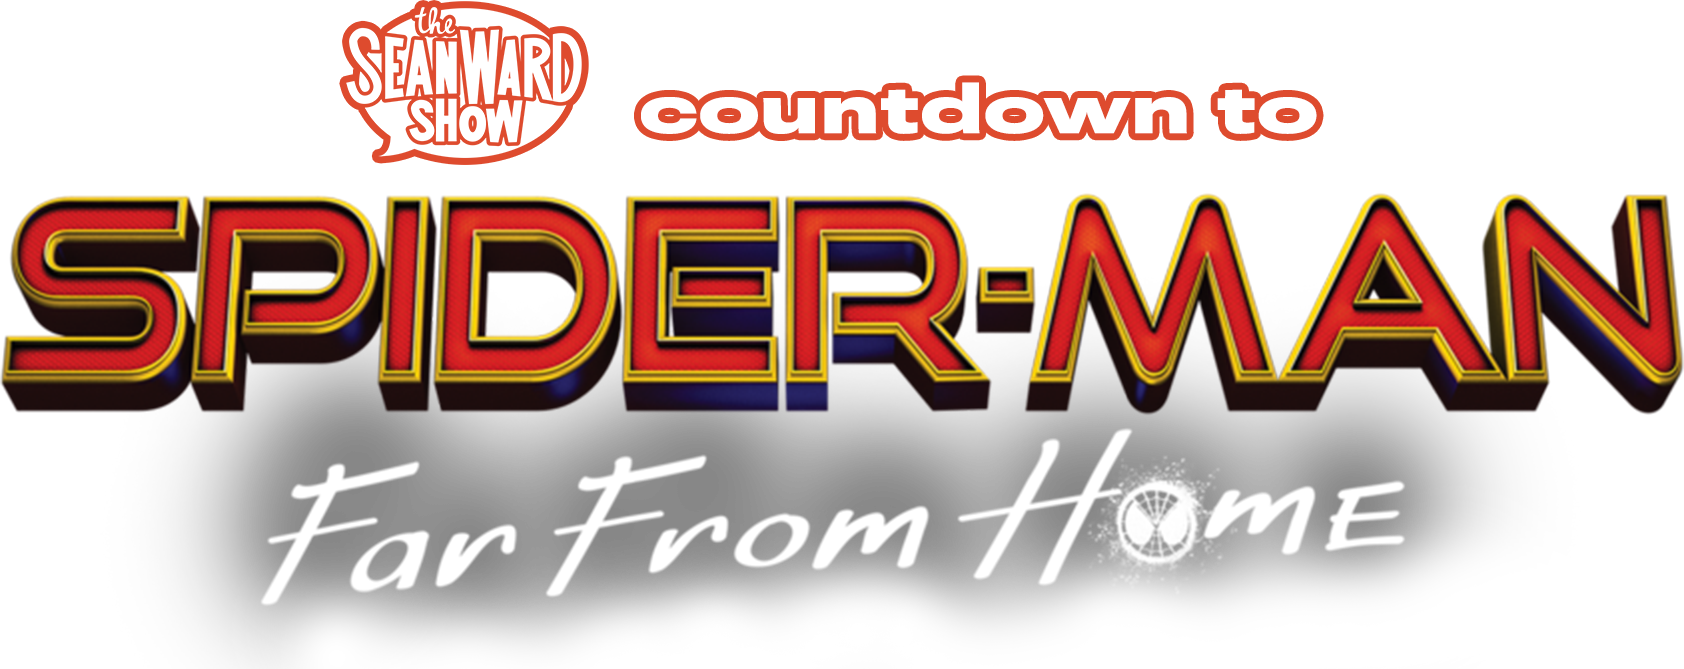 Spider-man far from home logo title.png